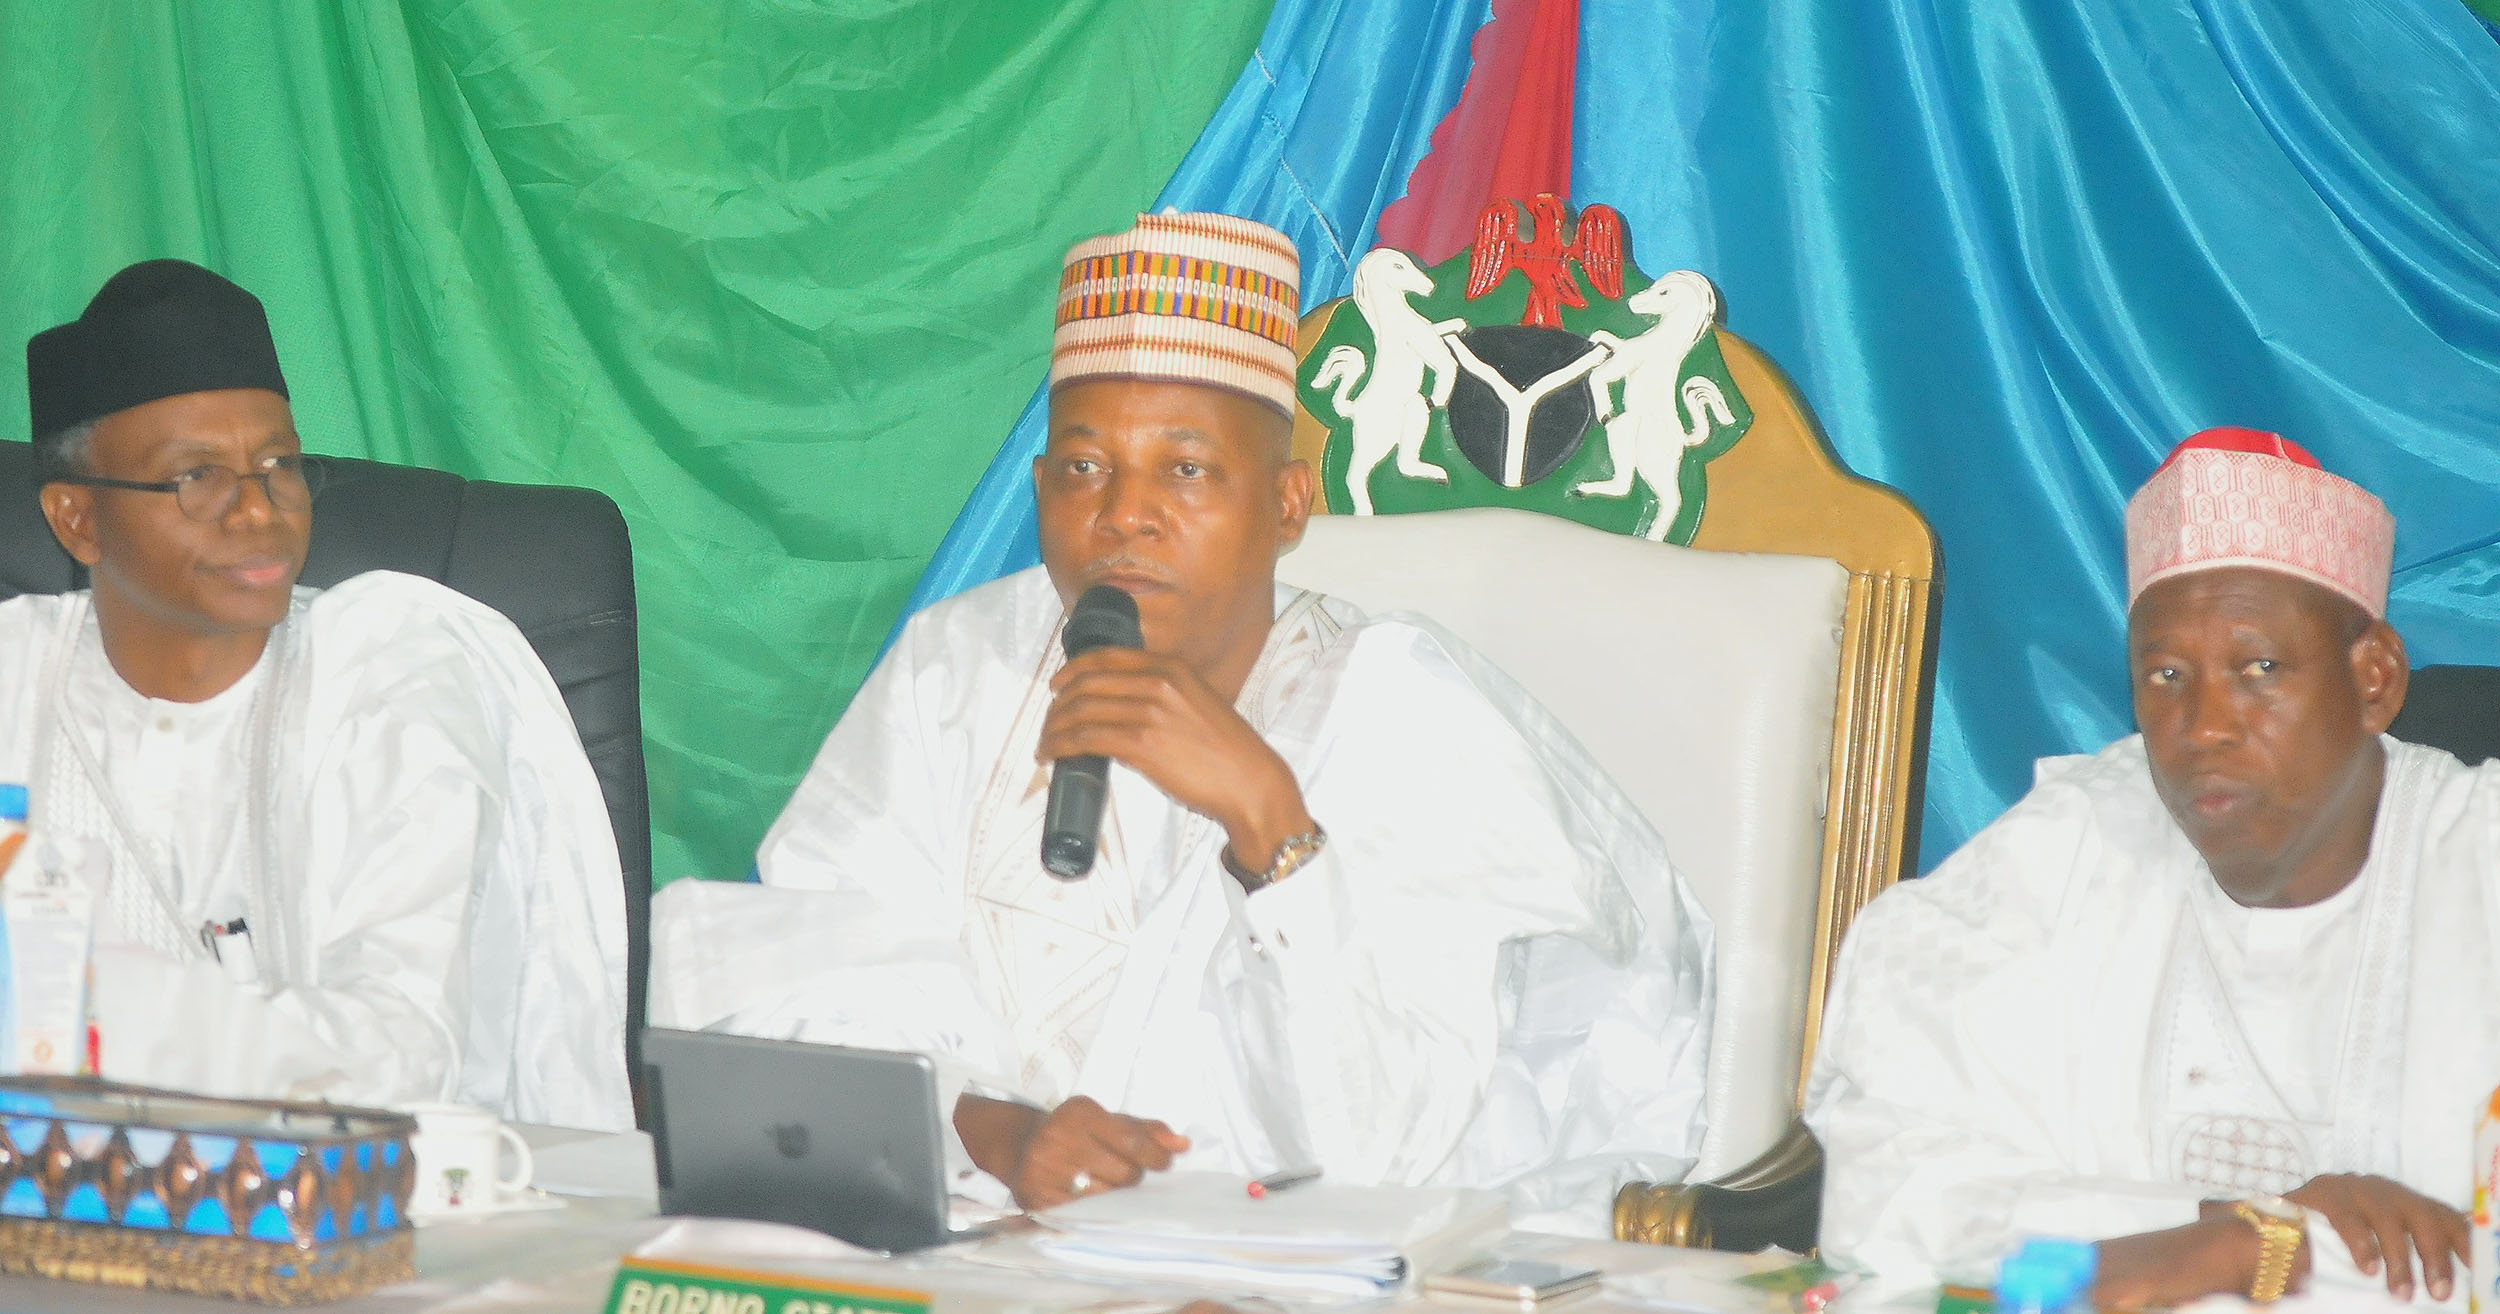 el-Rufai and Shettima are waiting for Buhari to die to seek Presidency - Arewa youths